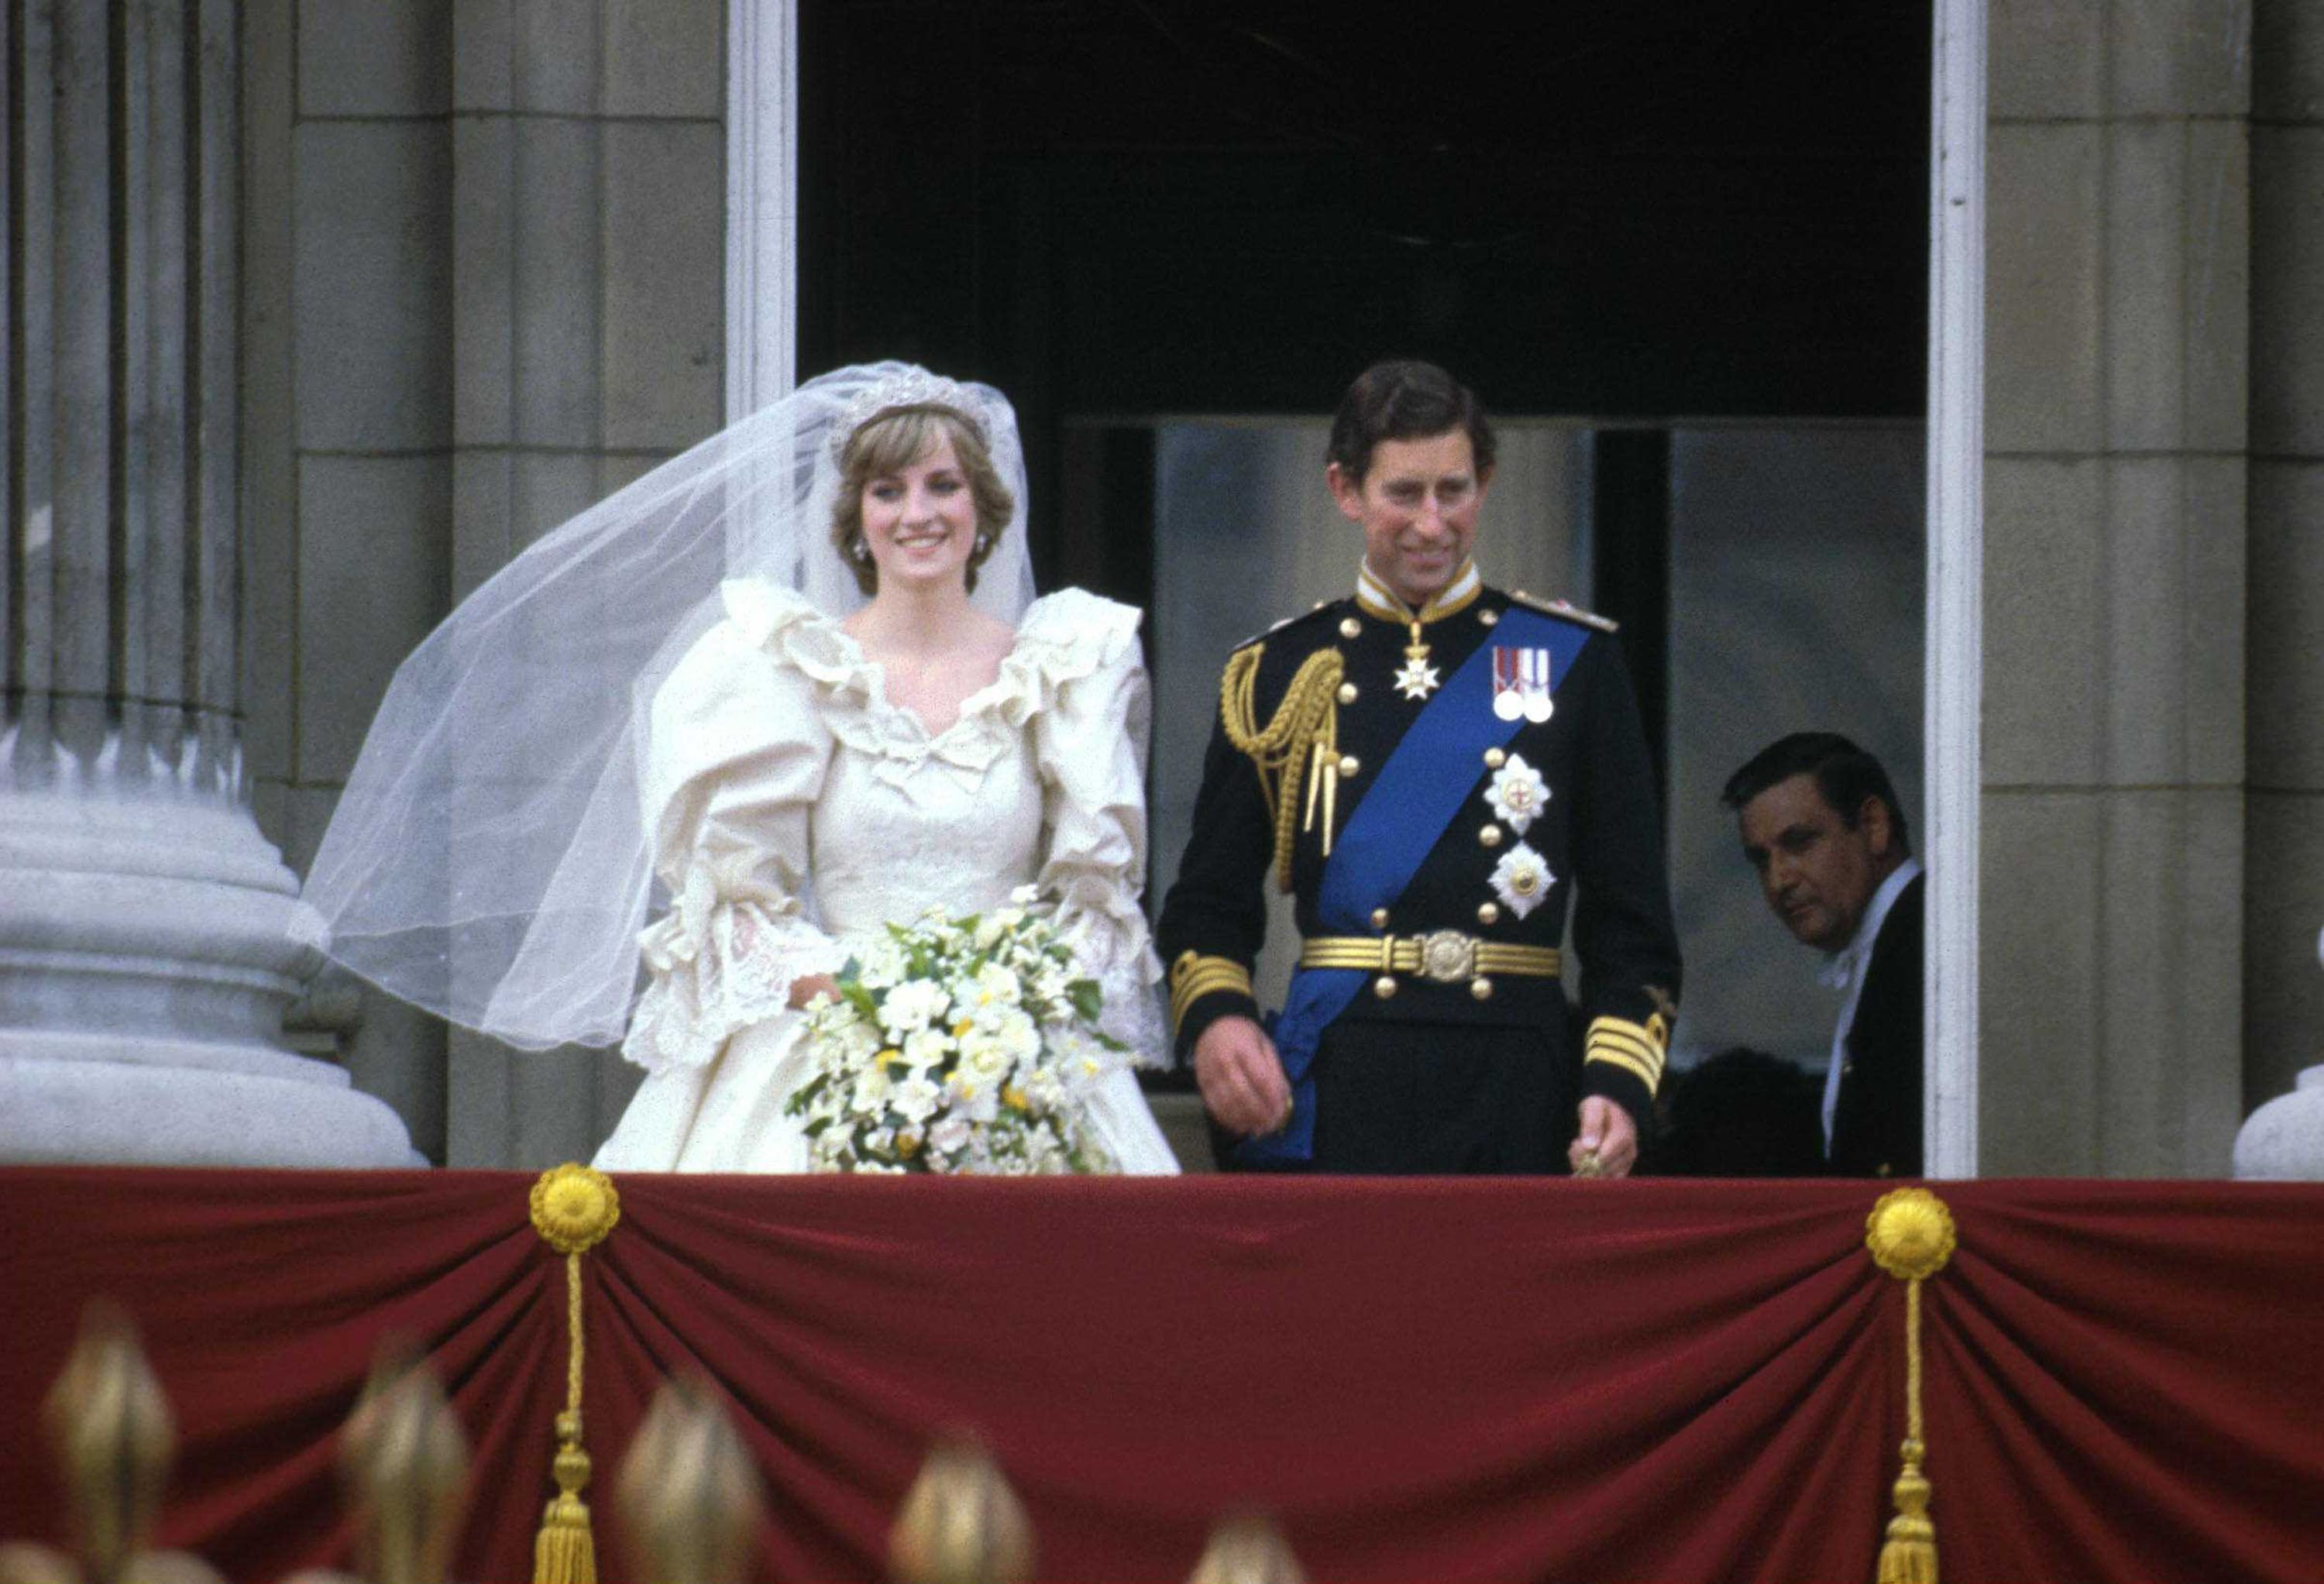 Diana Spencer and Prince Charles's Wedding / Getty Images